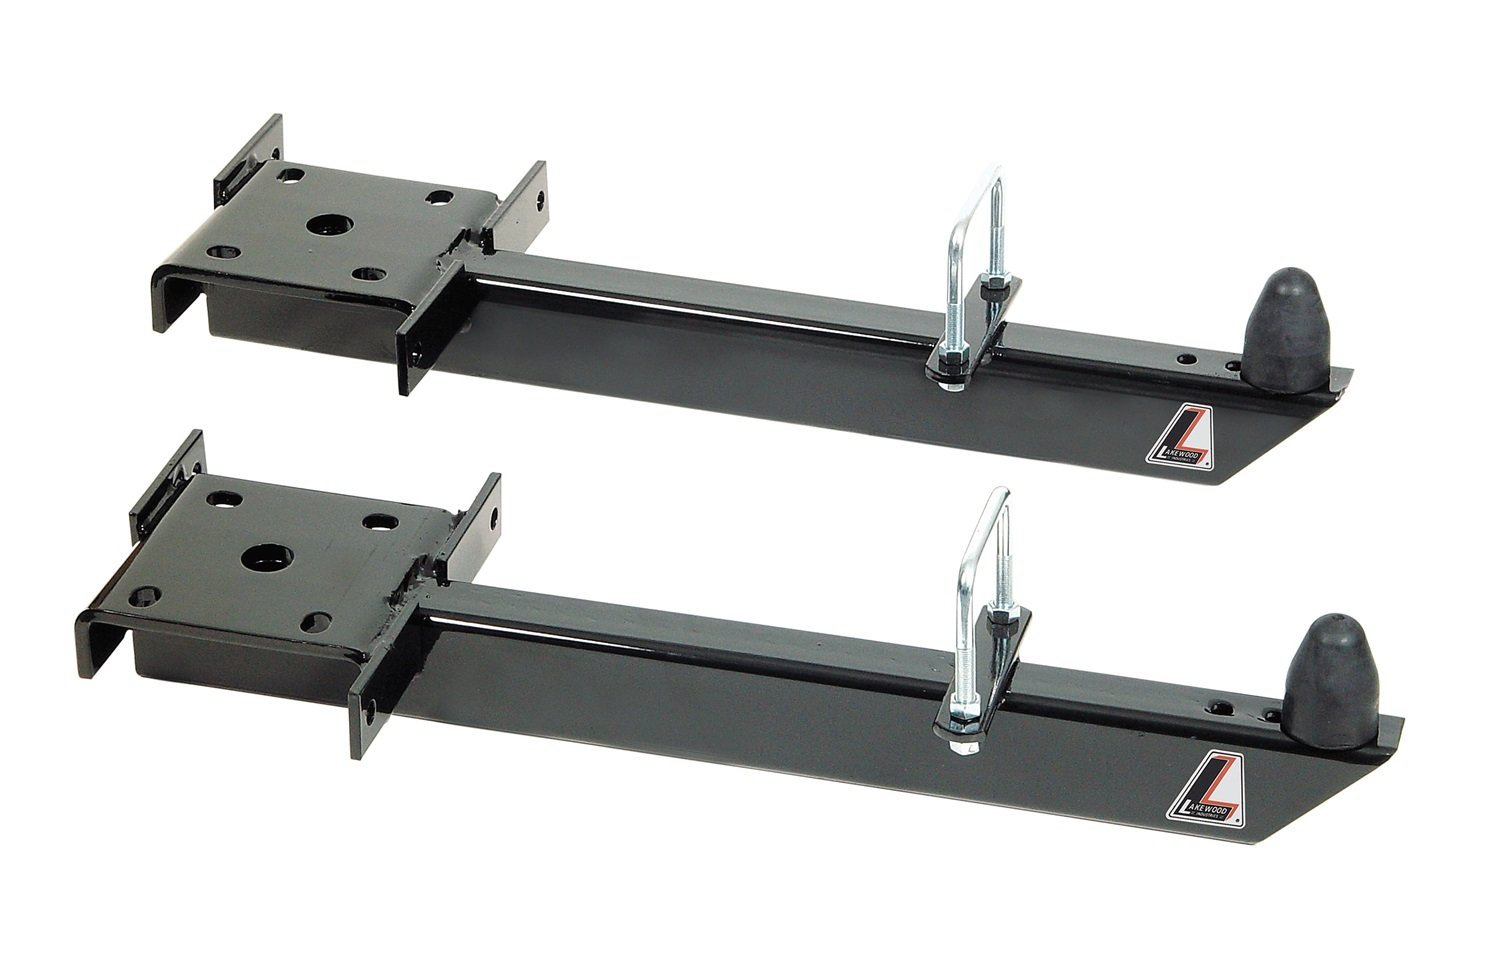 Lakewood 21606 Traction Bar by Lakewood (Image #1)